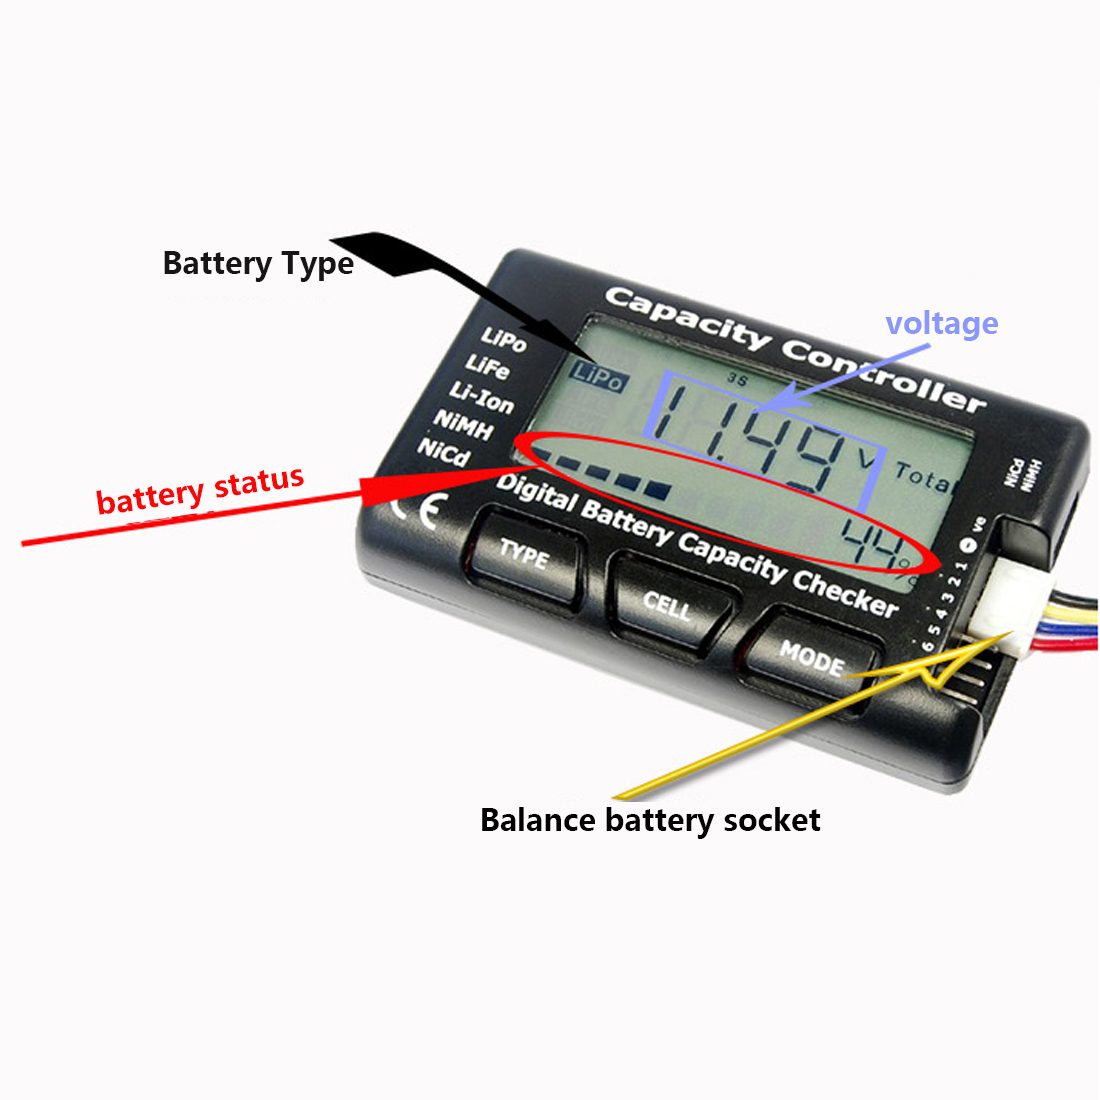 Good RC CellMeter-7 Digital Cell Battery Capacity Checker For LiPo LiFe Li-ion Nicd NiMH Battery Voltage Tester Checking модуль памяти dimm 16gb 2х8gb ddr4 pc21300 2666mhz crucial ballistix tactical blt2c8g4d26afta